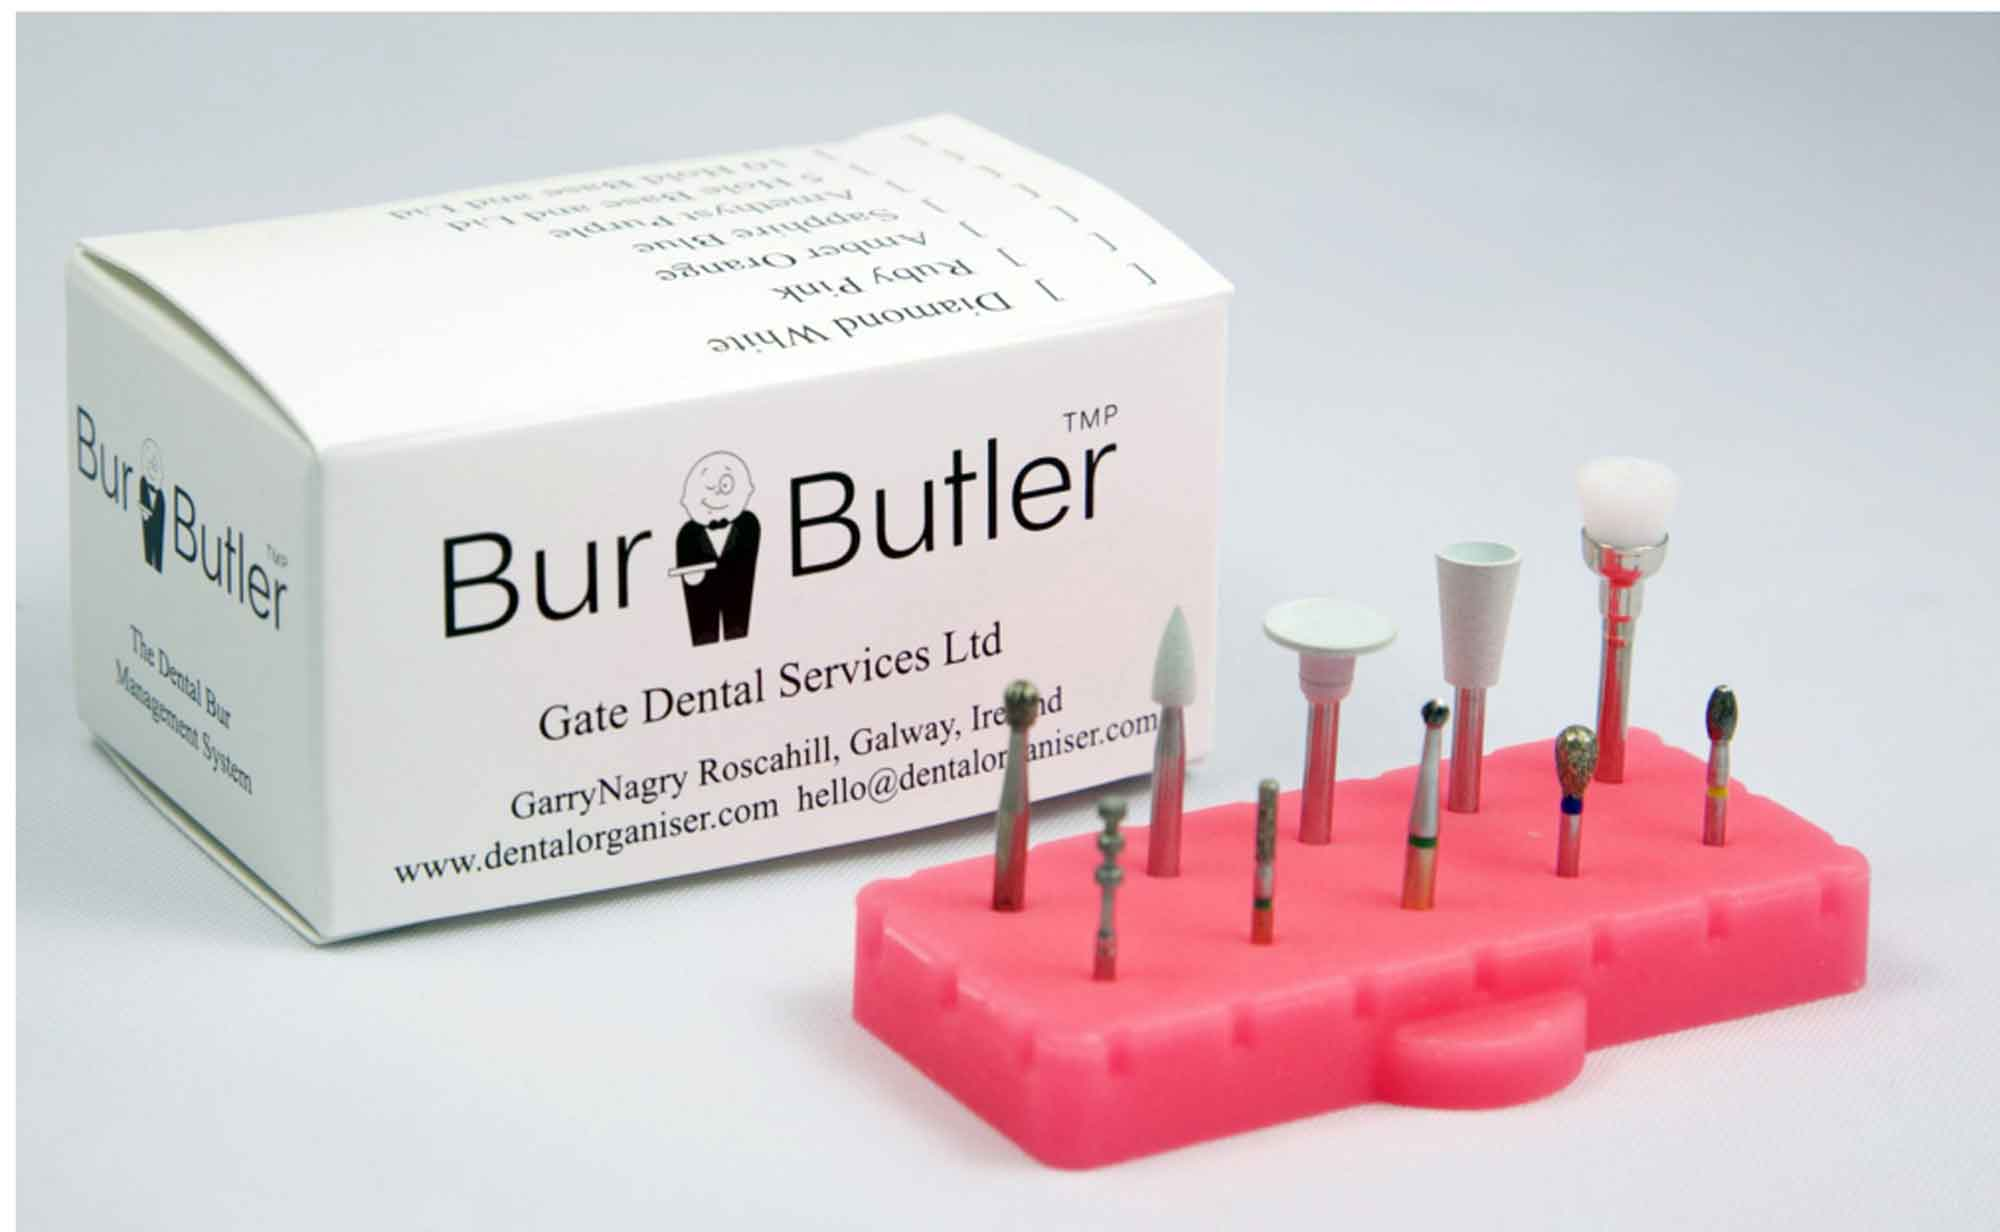 The Burbutler aids bur management from chairside by keeping all of your burs in one place